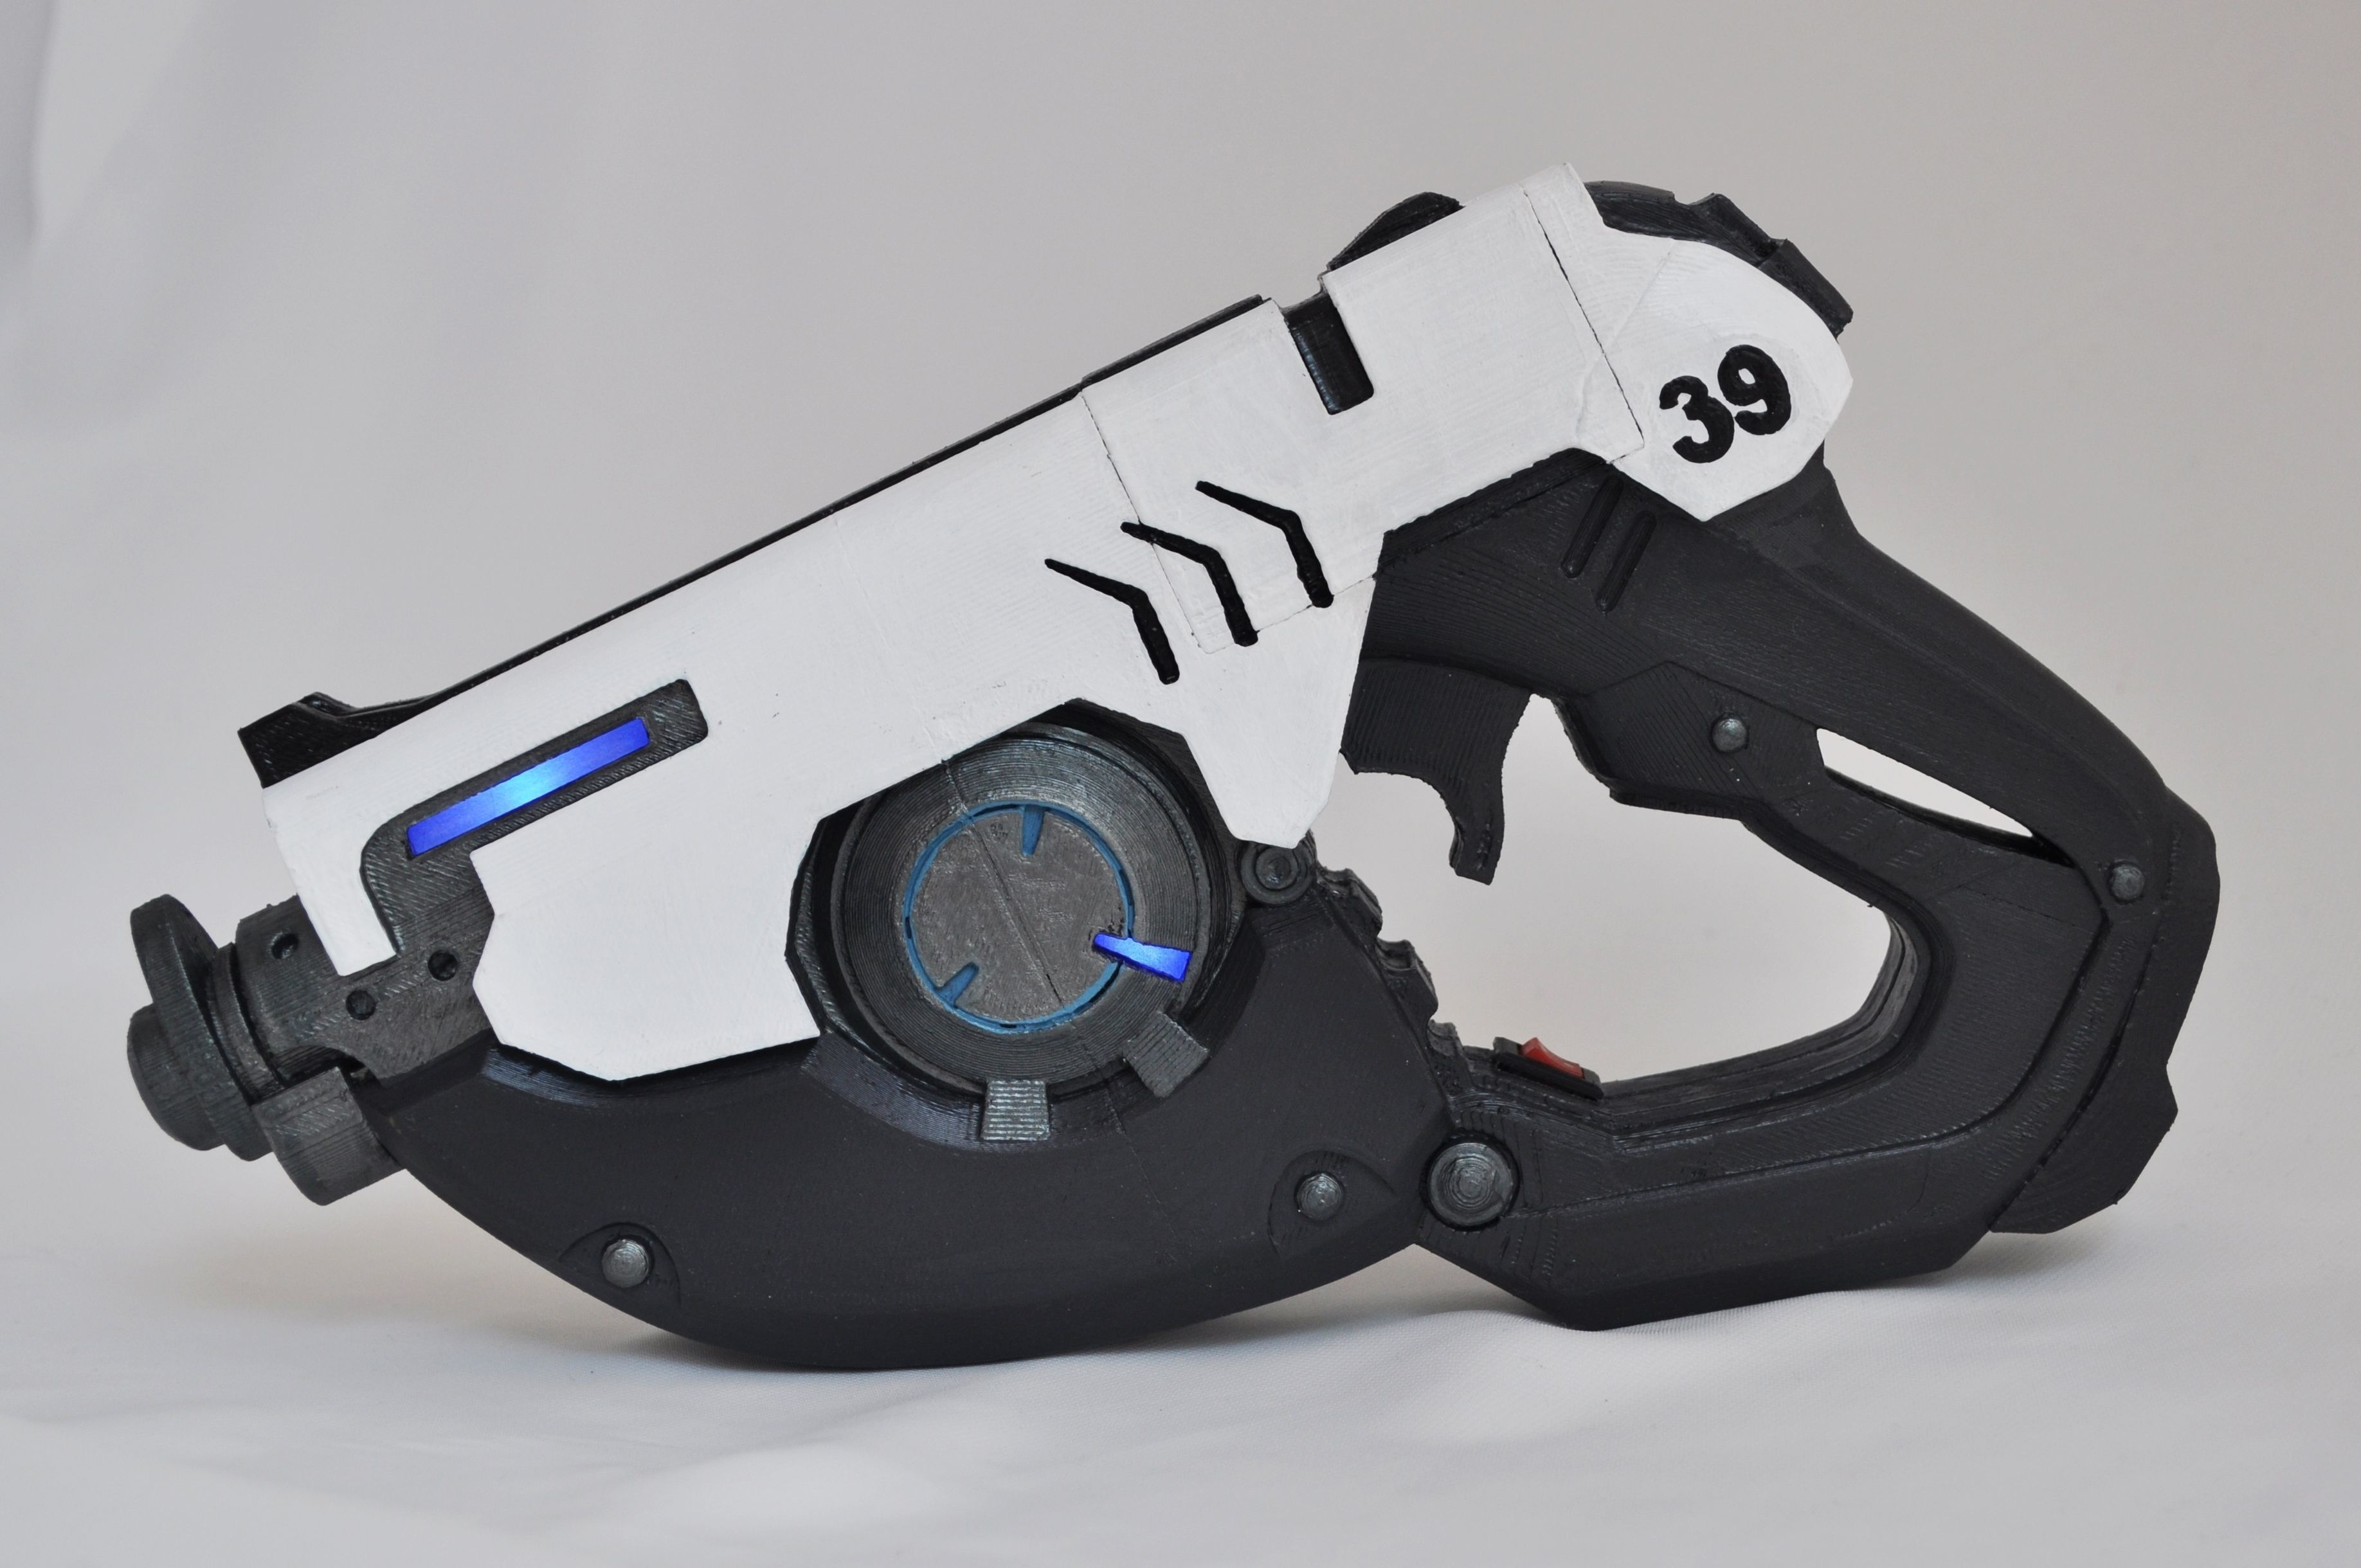 Overwatch Tracer pulse pistol with LEDs